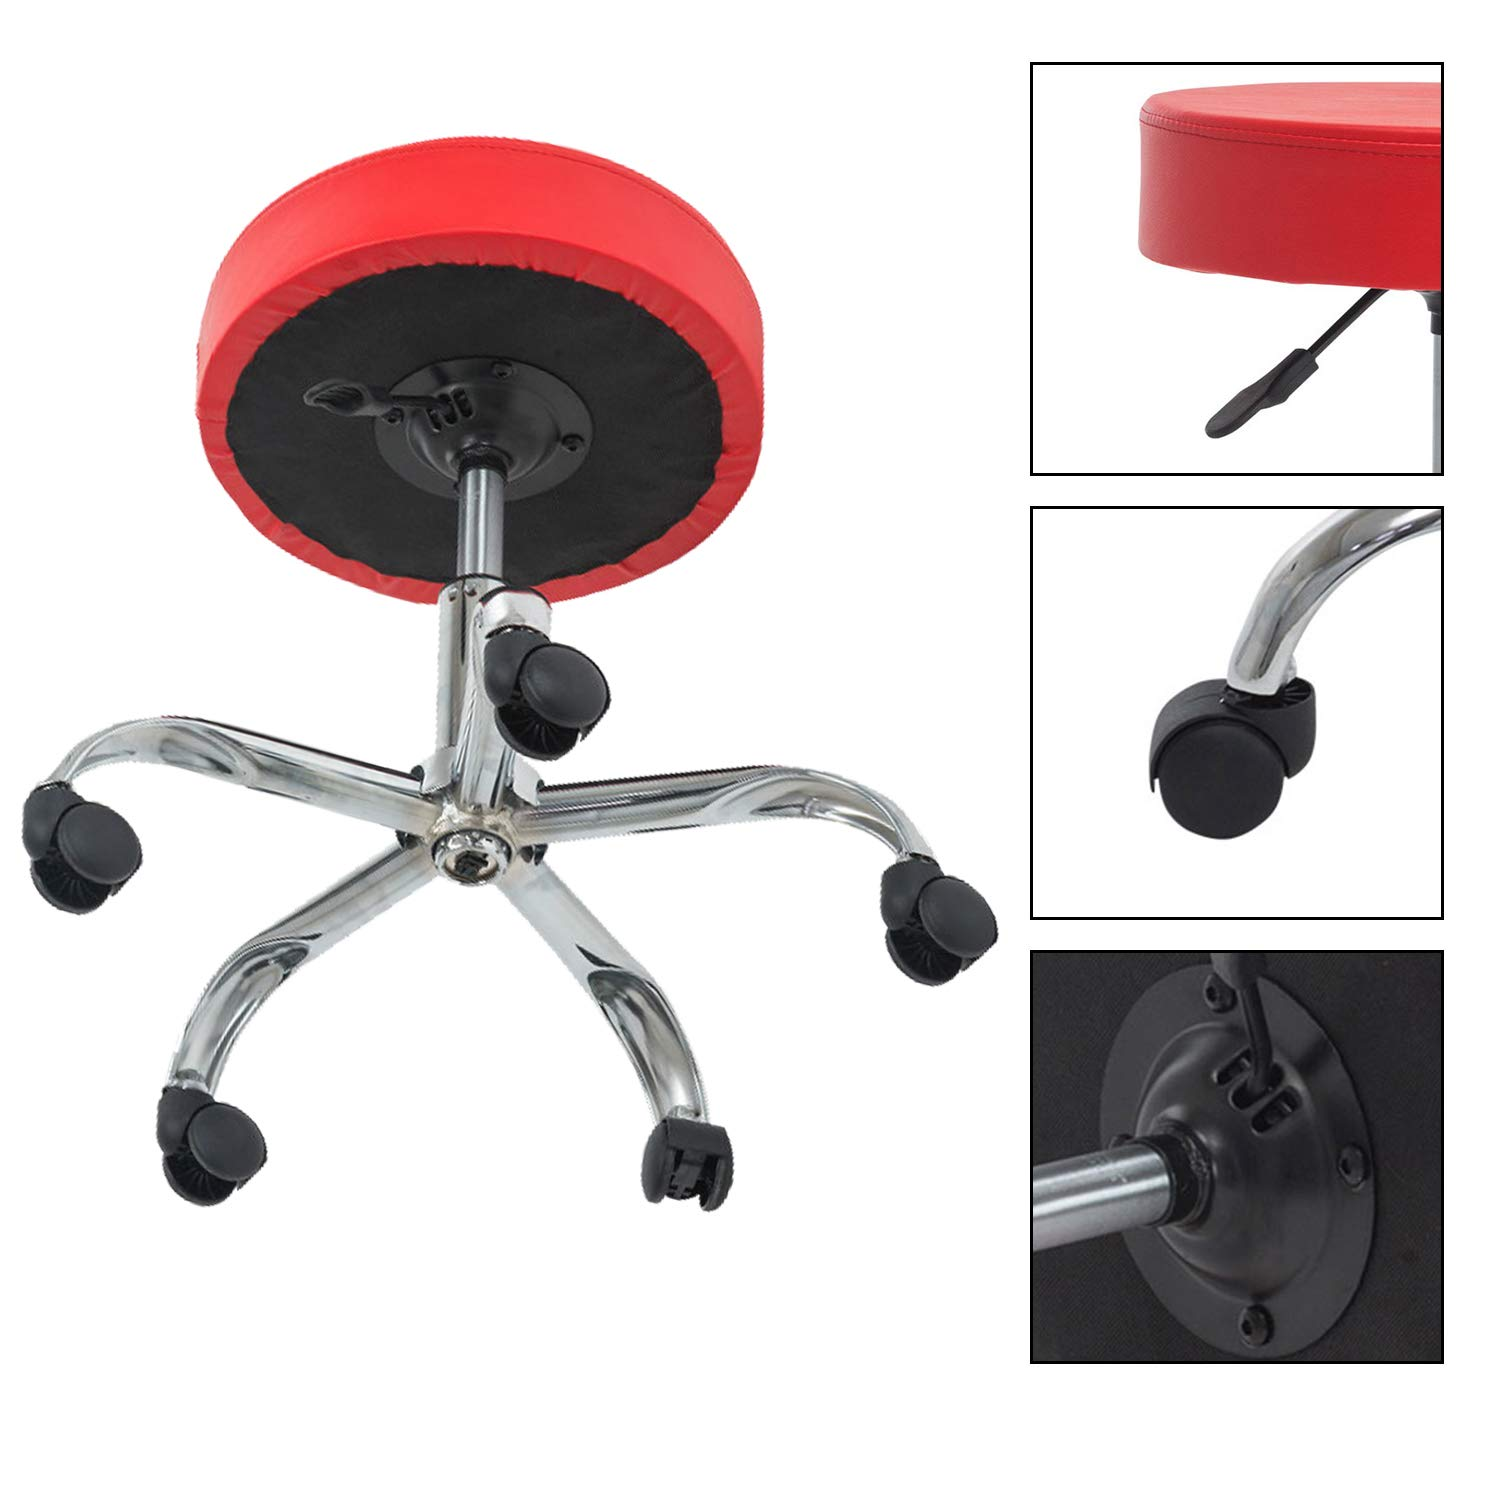 YURUCY Rolling Stool Chair Height Adjustable Salon&Spa Office Home Smooth Chairs (Red) by YURUCY (Image #1)